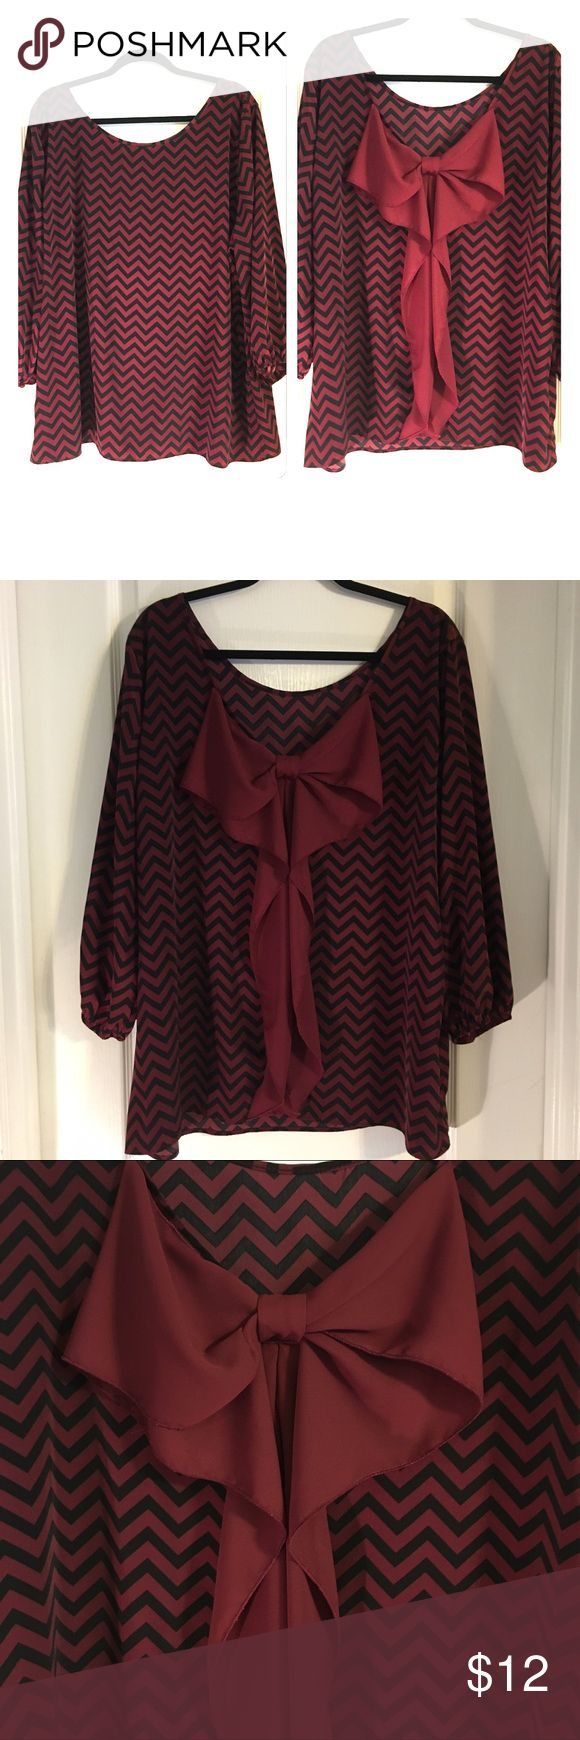 """Maroon & Black Chevron Print Boutique Blouse Giddy Up Glamour Boutique Brand ~ Plus Size Maroon & Black Chevron Print with Maroon Bow on the Back ~ Elastic on Sleeves ~ Shirt does not have Size tag but fits like a 2X ~ UA to UA is approximately 26"""" ~ Length from collar to hem is approximately 25"""" ~ EUC Giddy Up Glamour  Tops Blouses"""